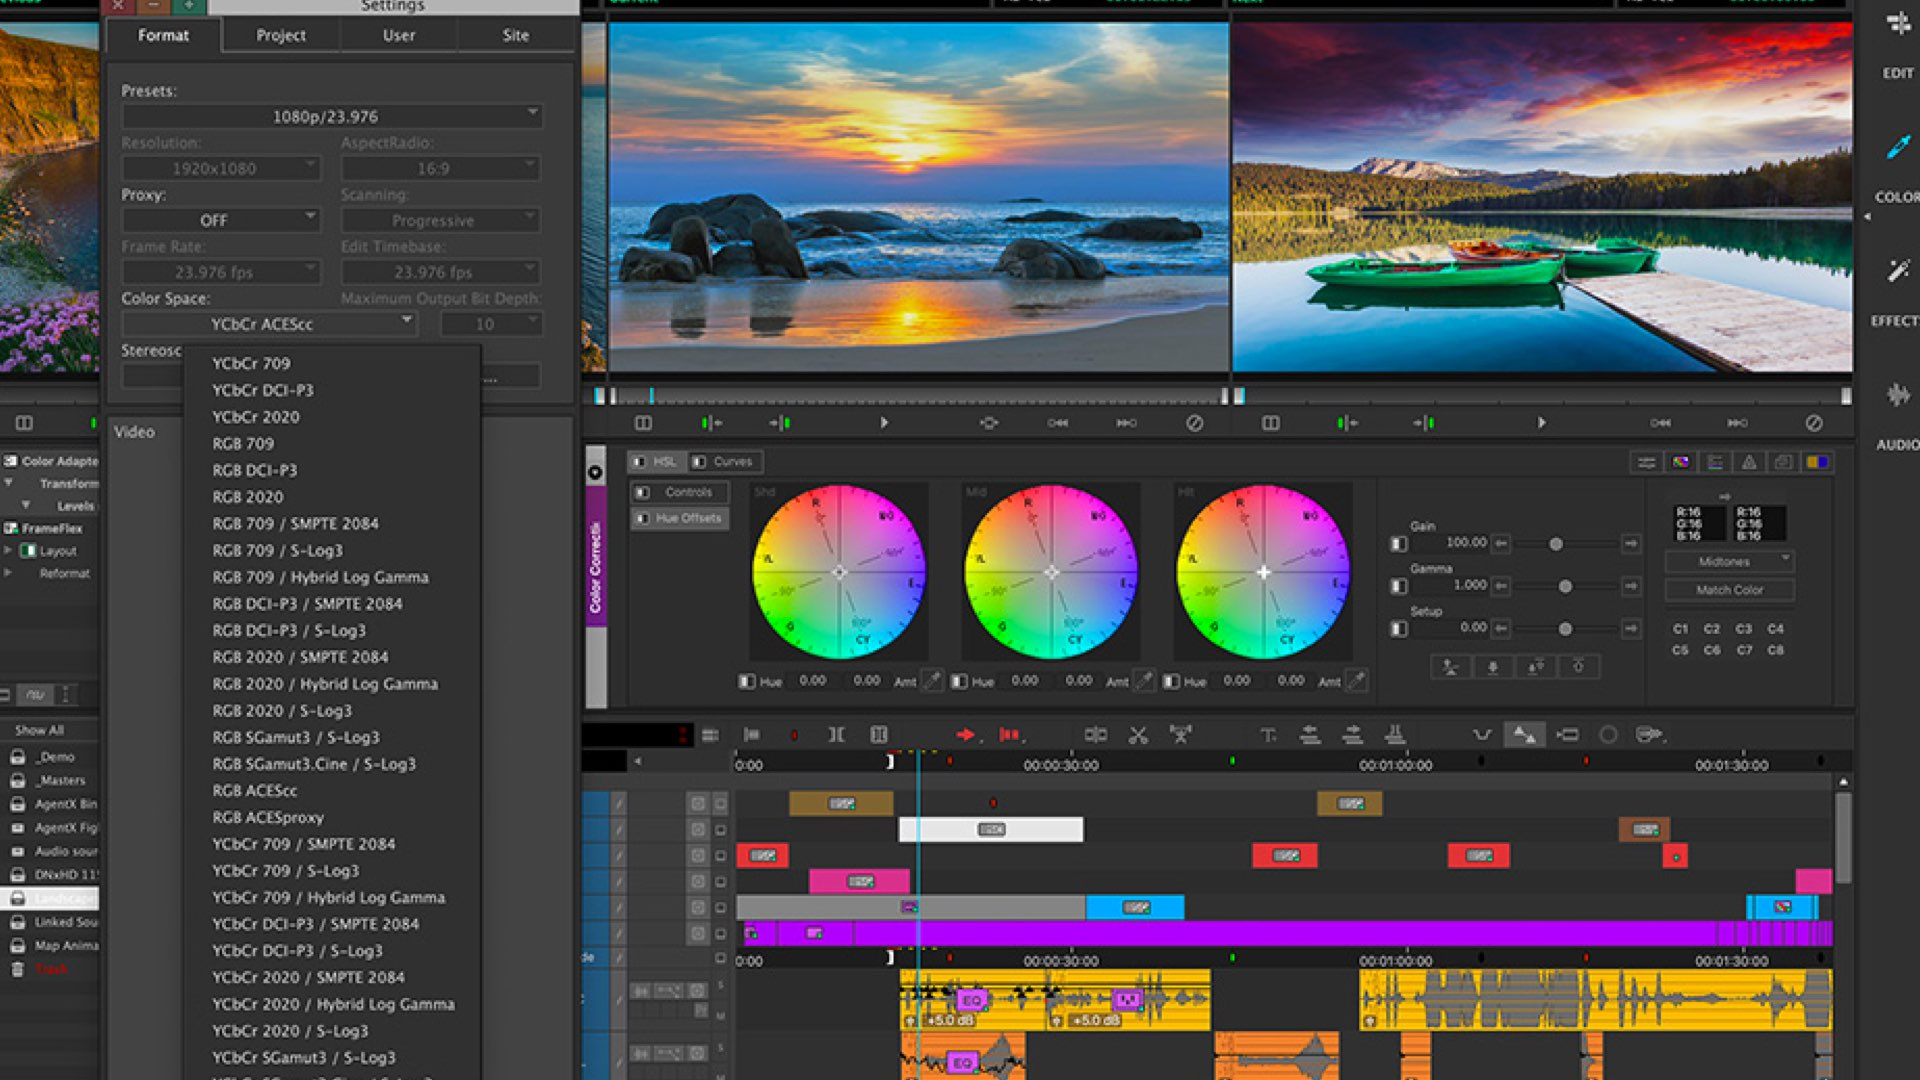 Braw 1 5 To Become Available In Premiere Pro And Avid But Not Fcpx Y M Cinema News Insights On Digital Cinema